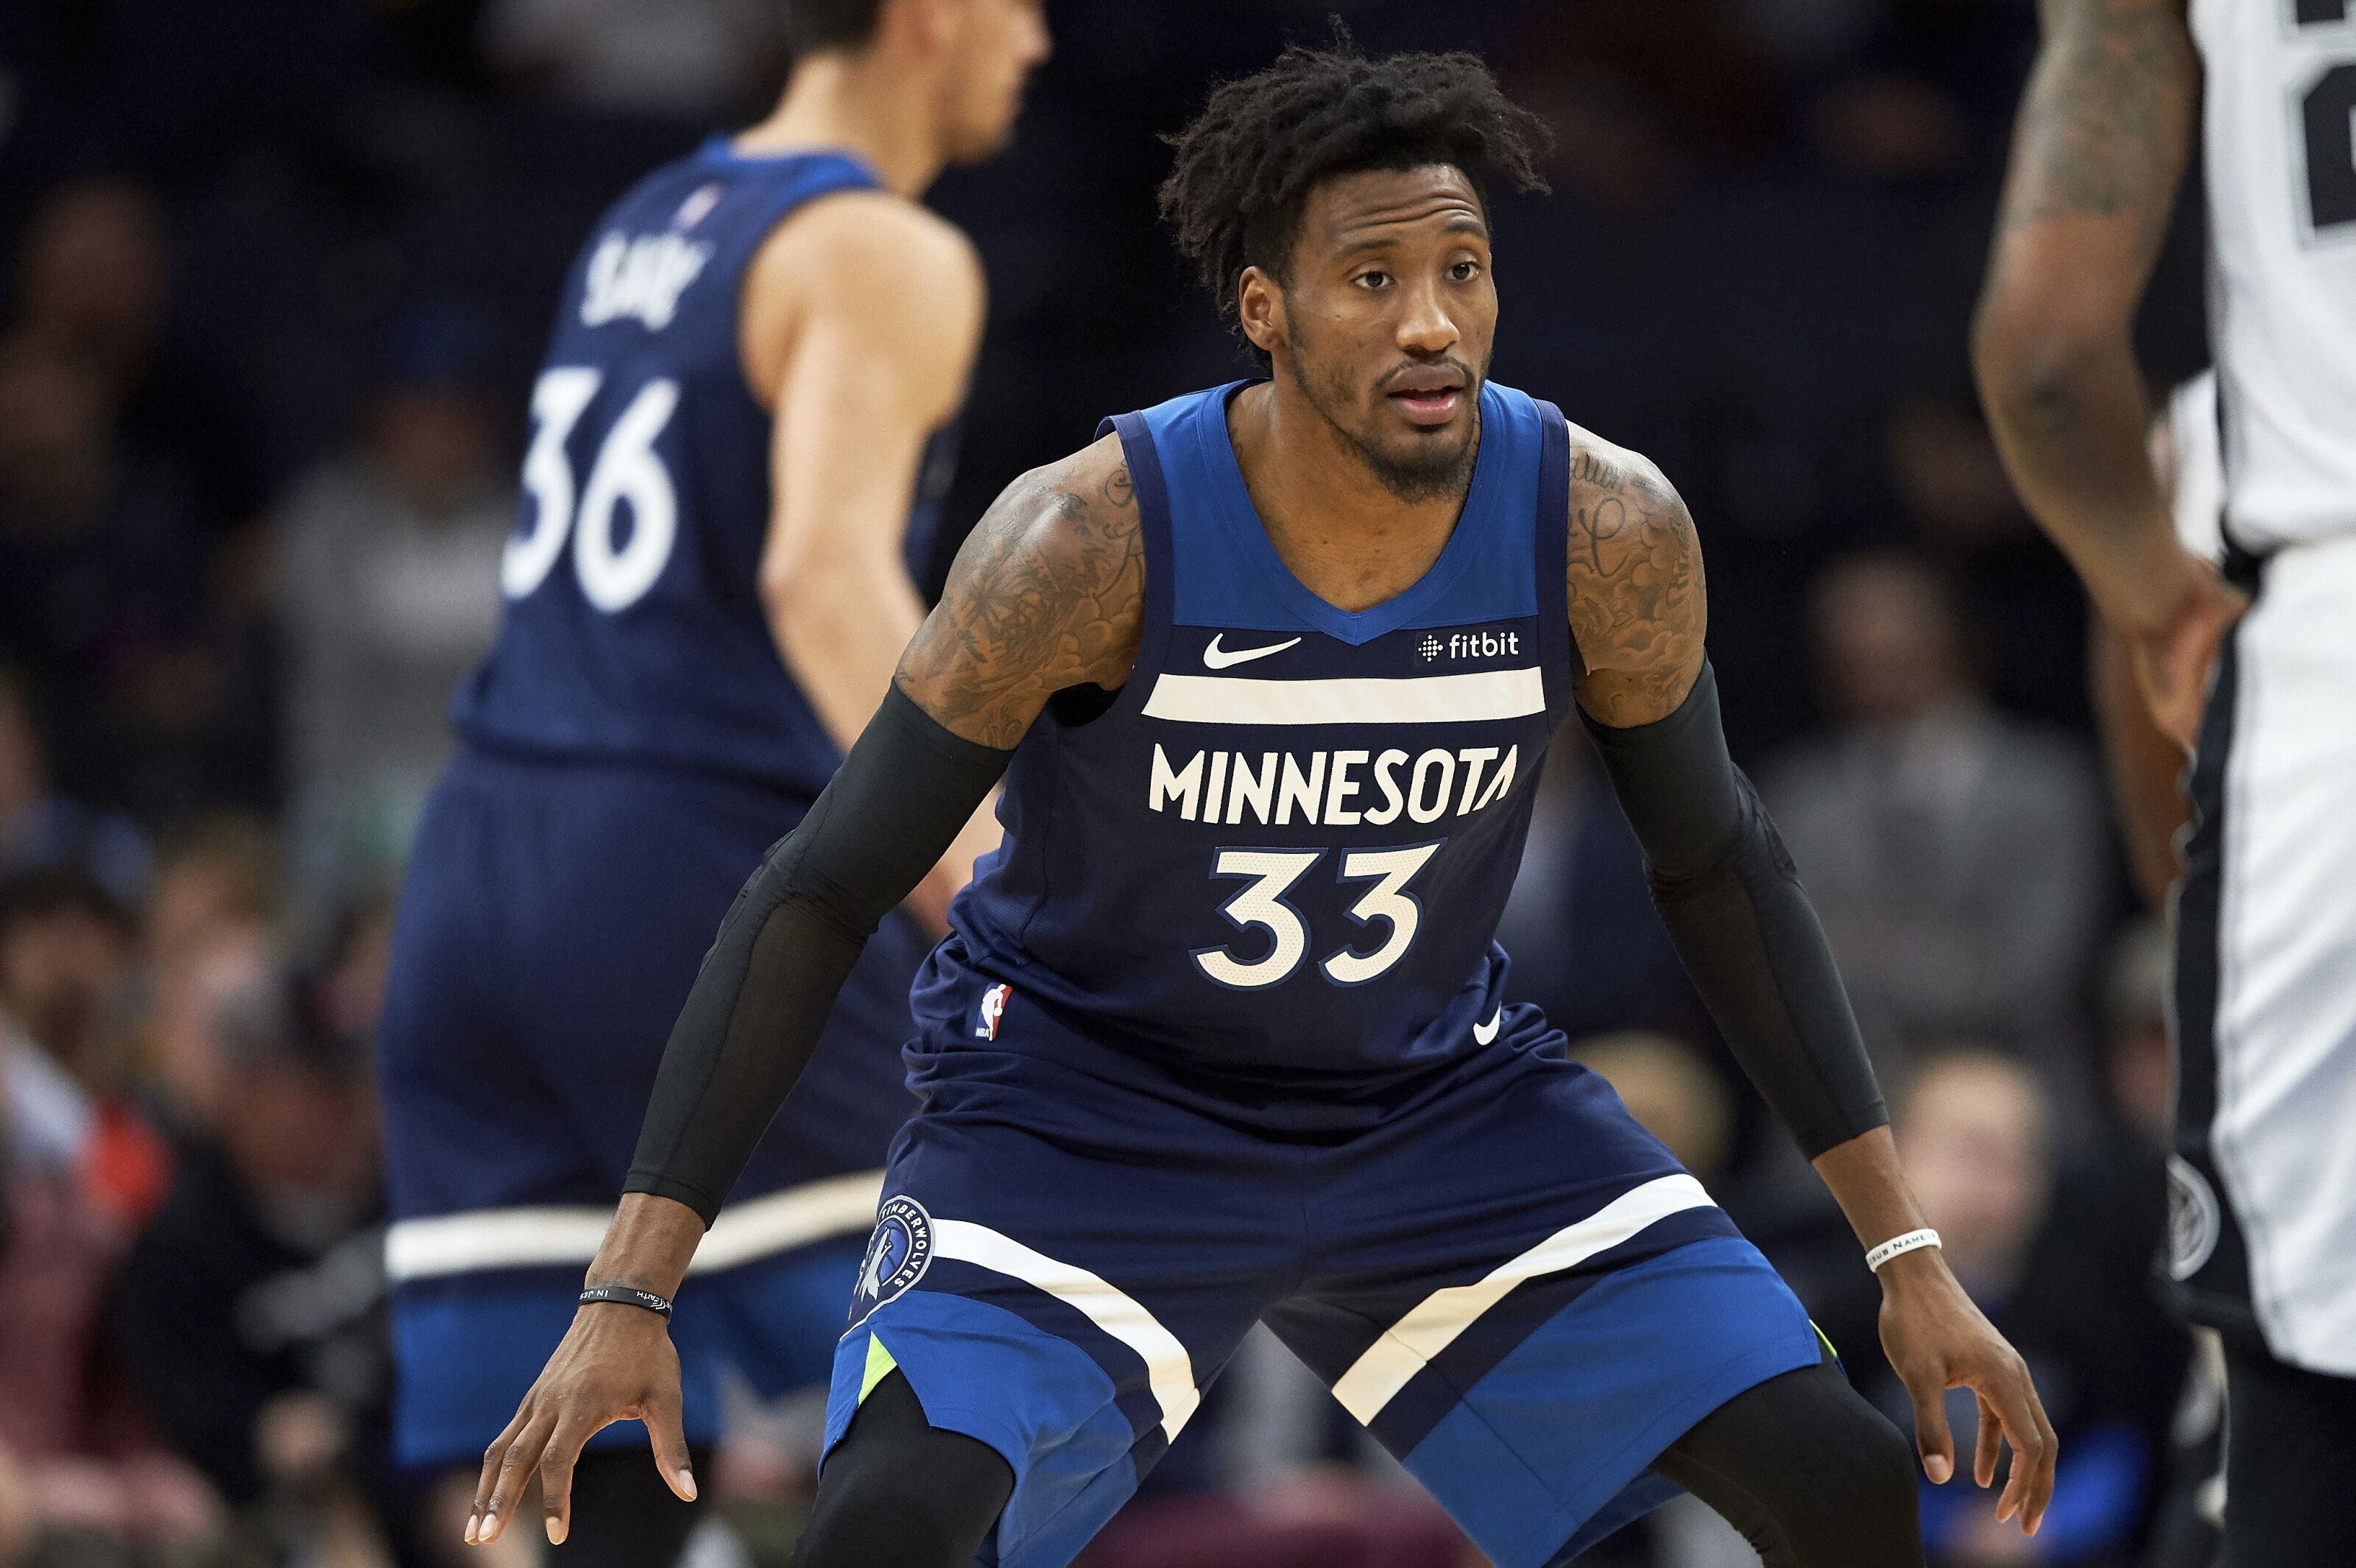 Minnesota Timberwolves: Robert Covington can win DPOY